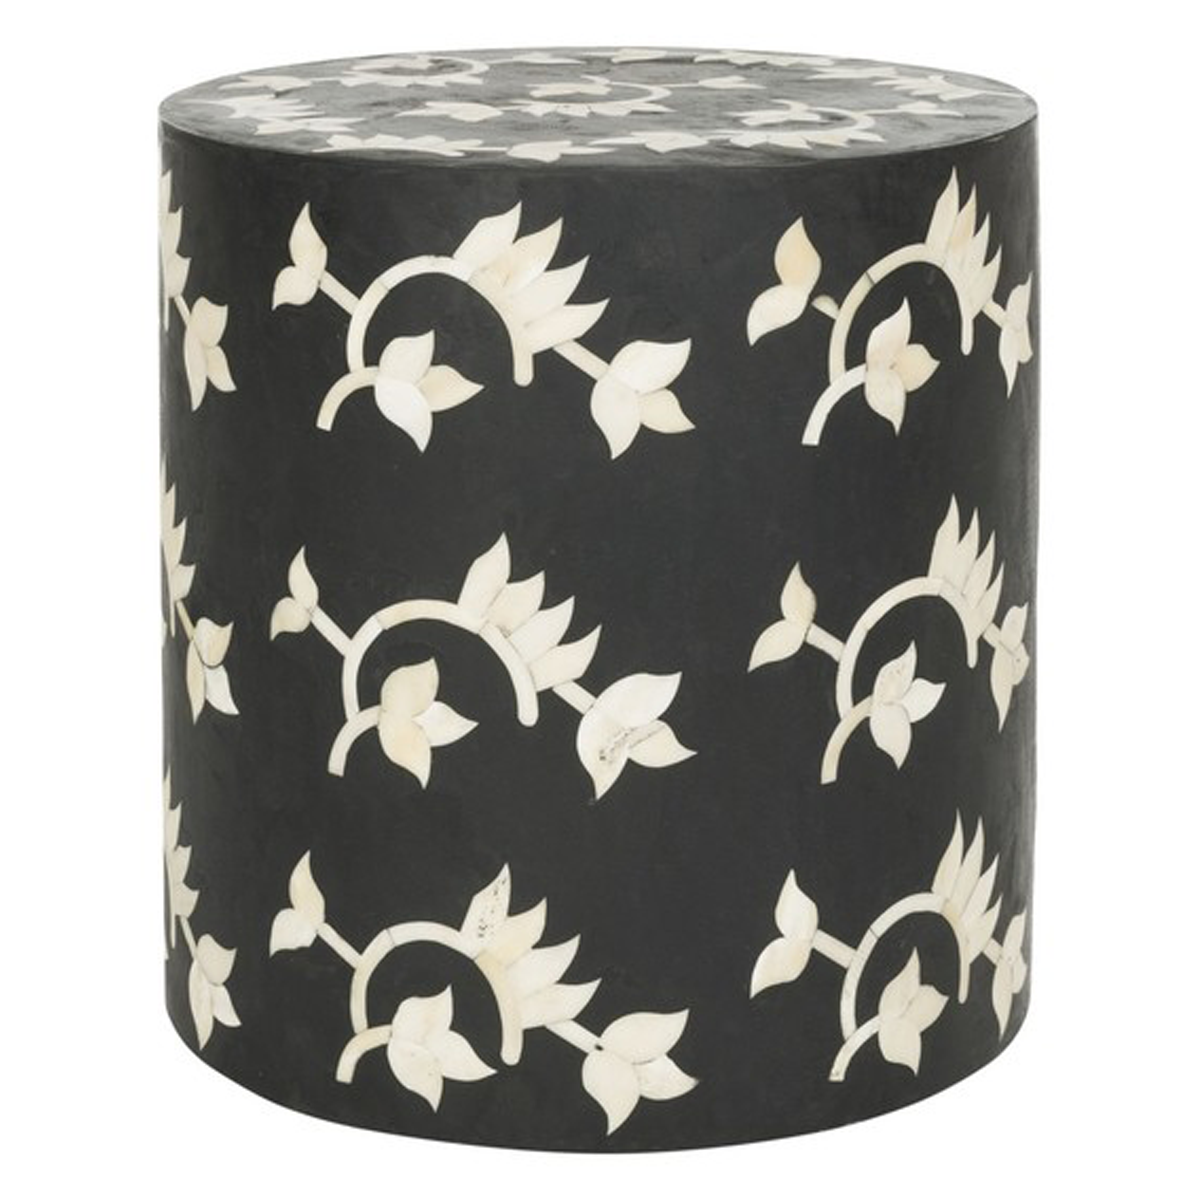 Bone Inlay Garden Stool - Black